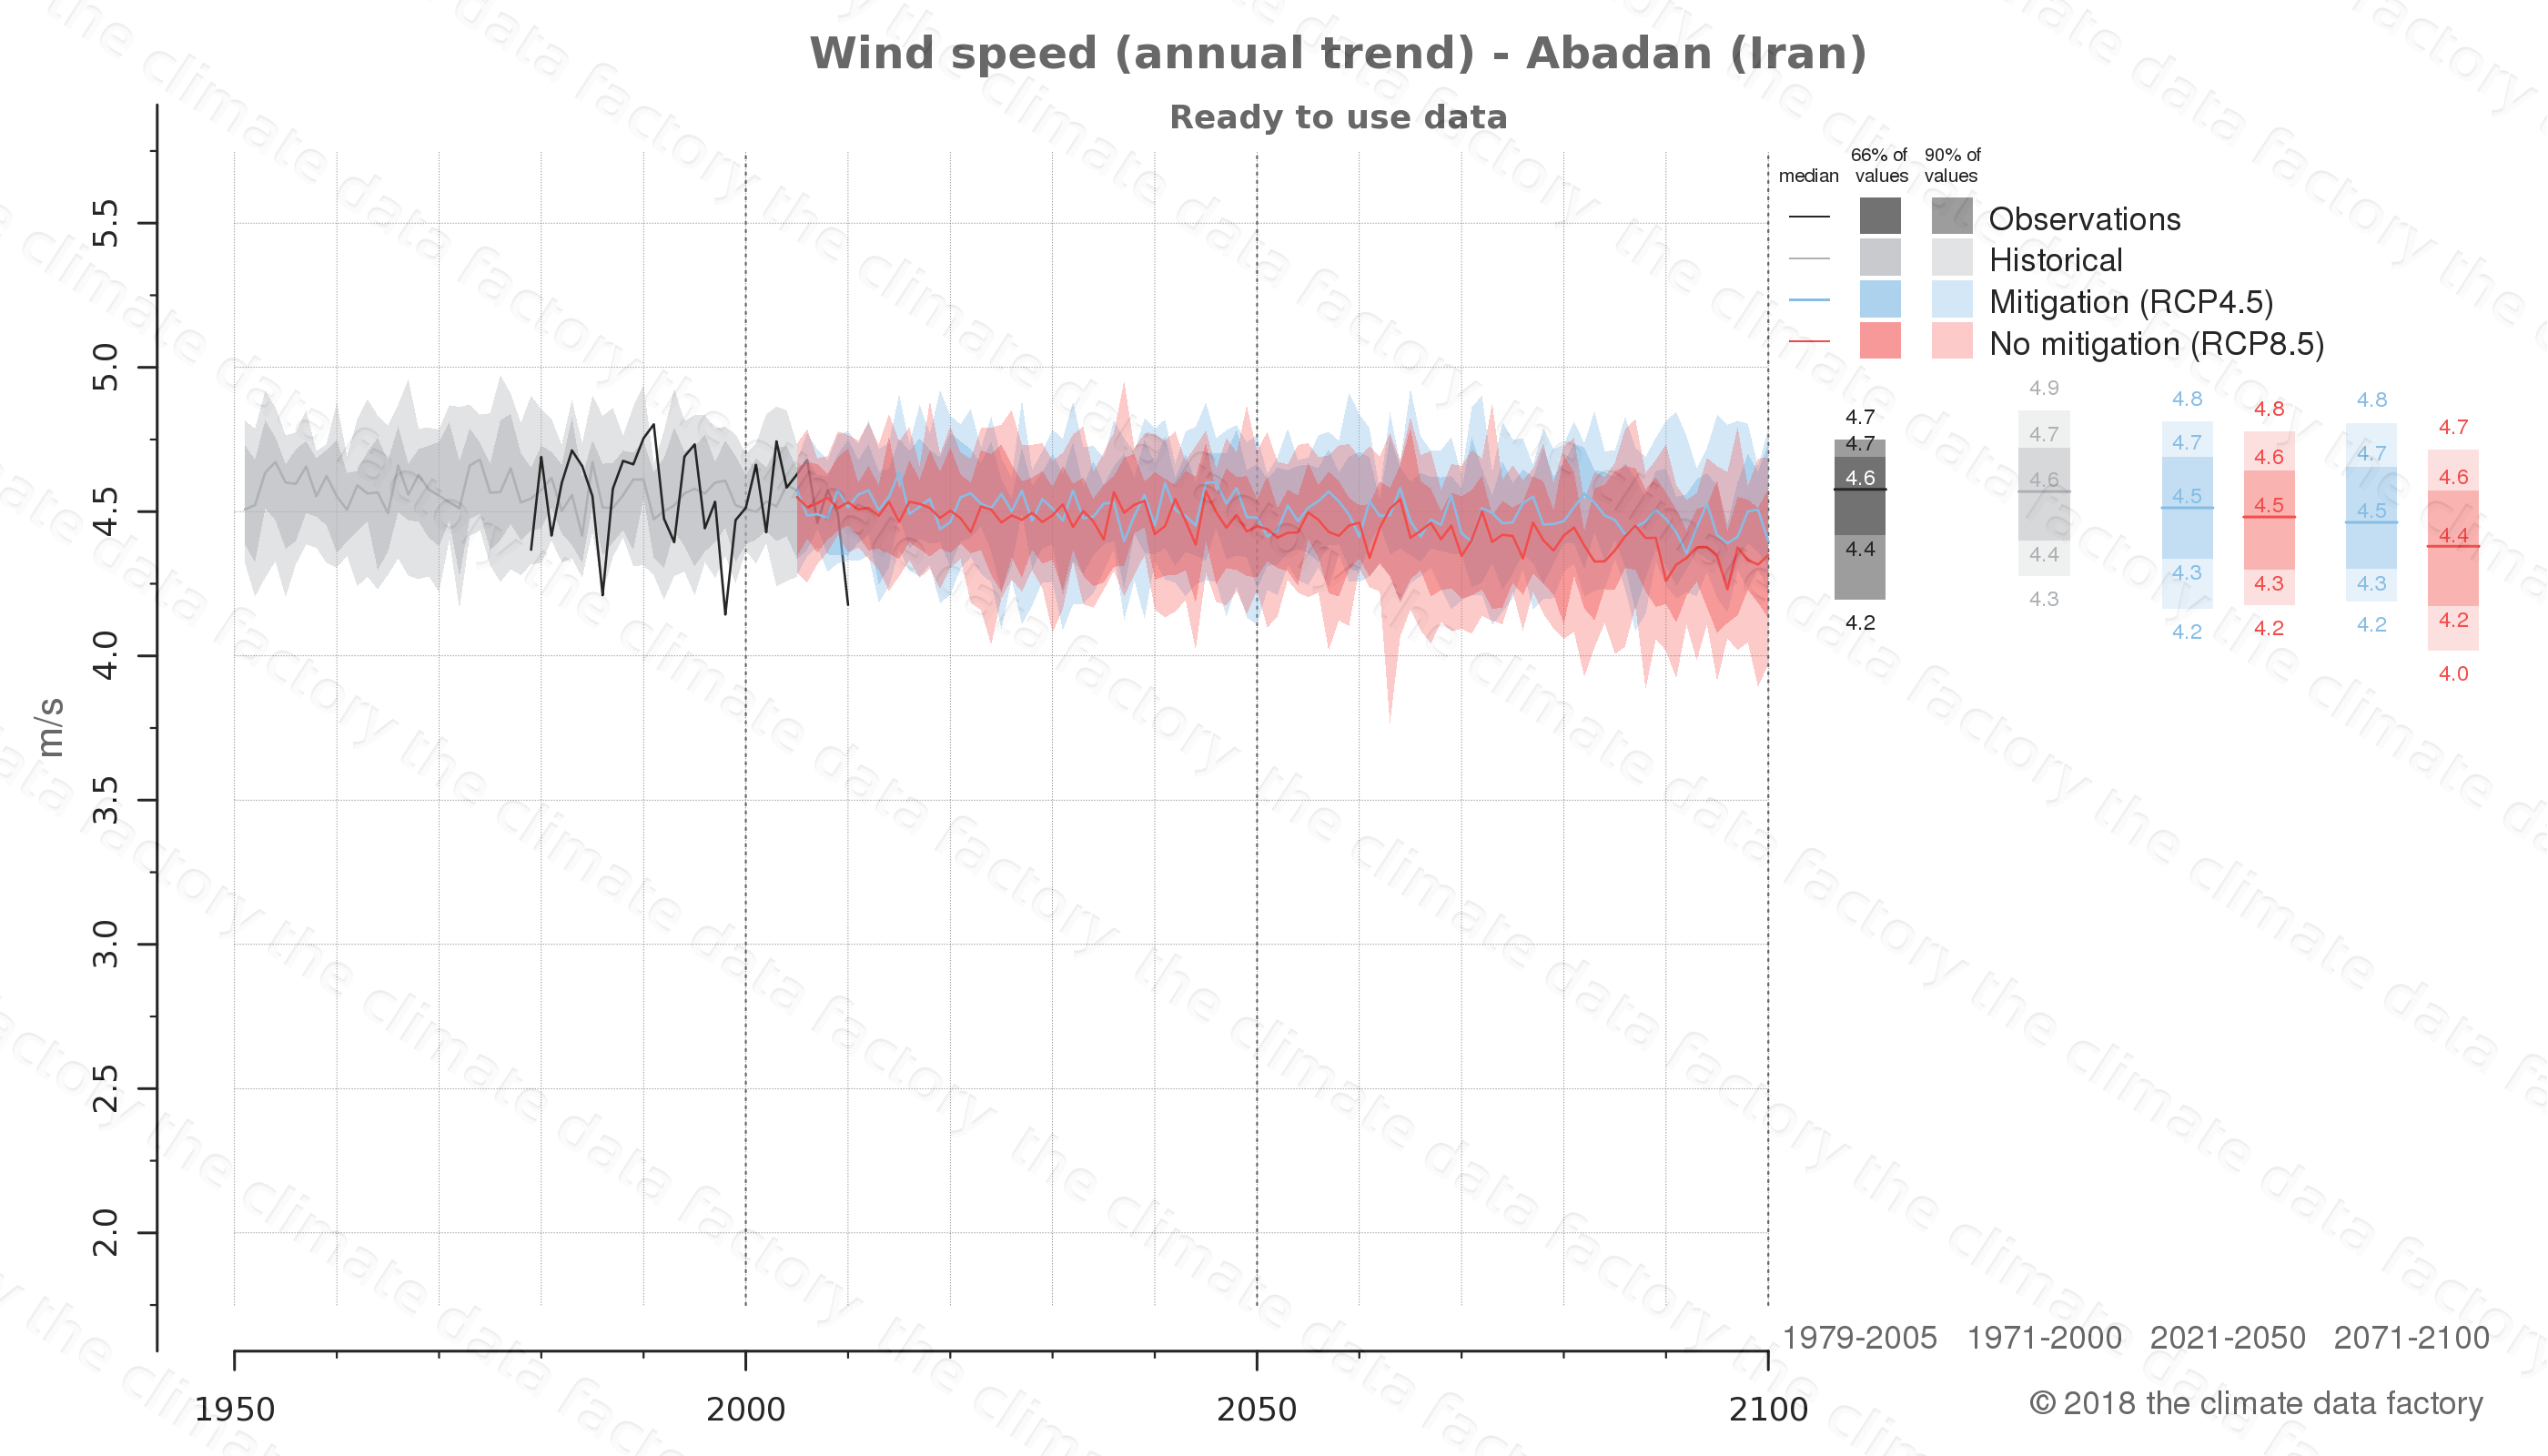 climate change data policy adaptation climate graph city data wind-speed abadan iran